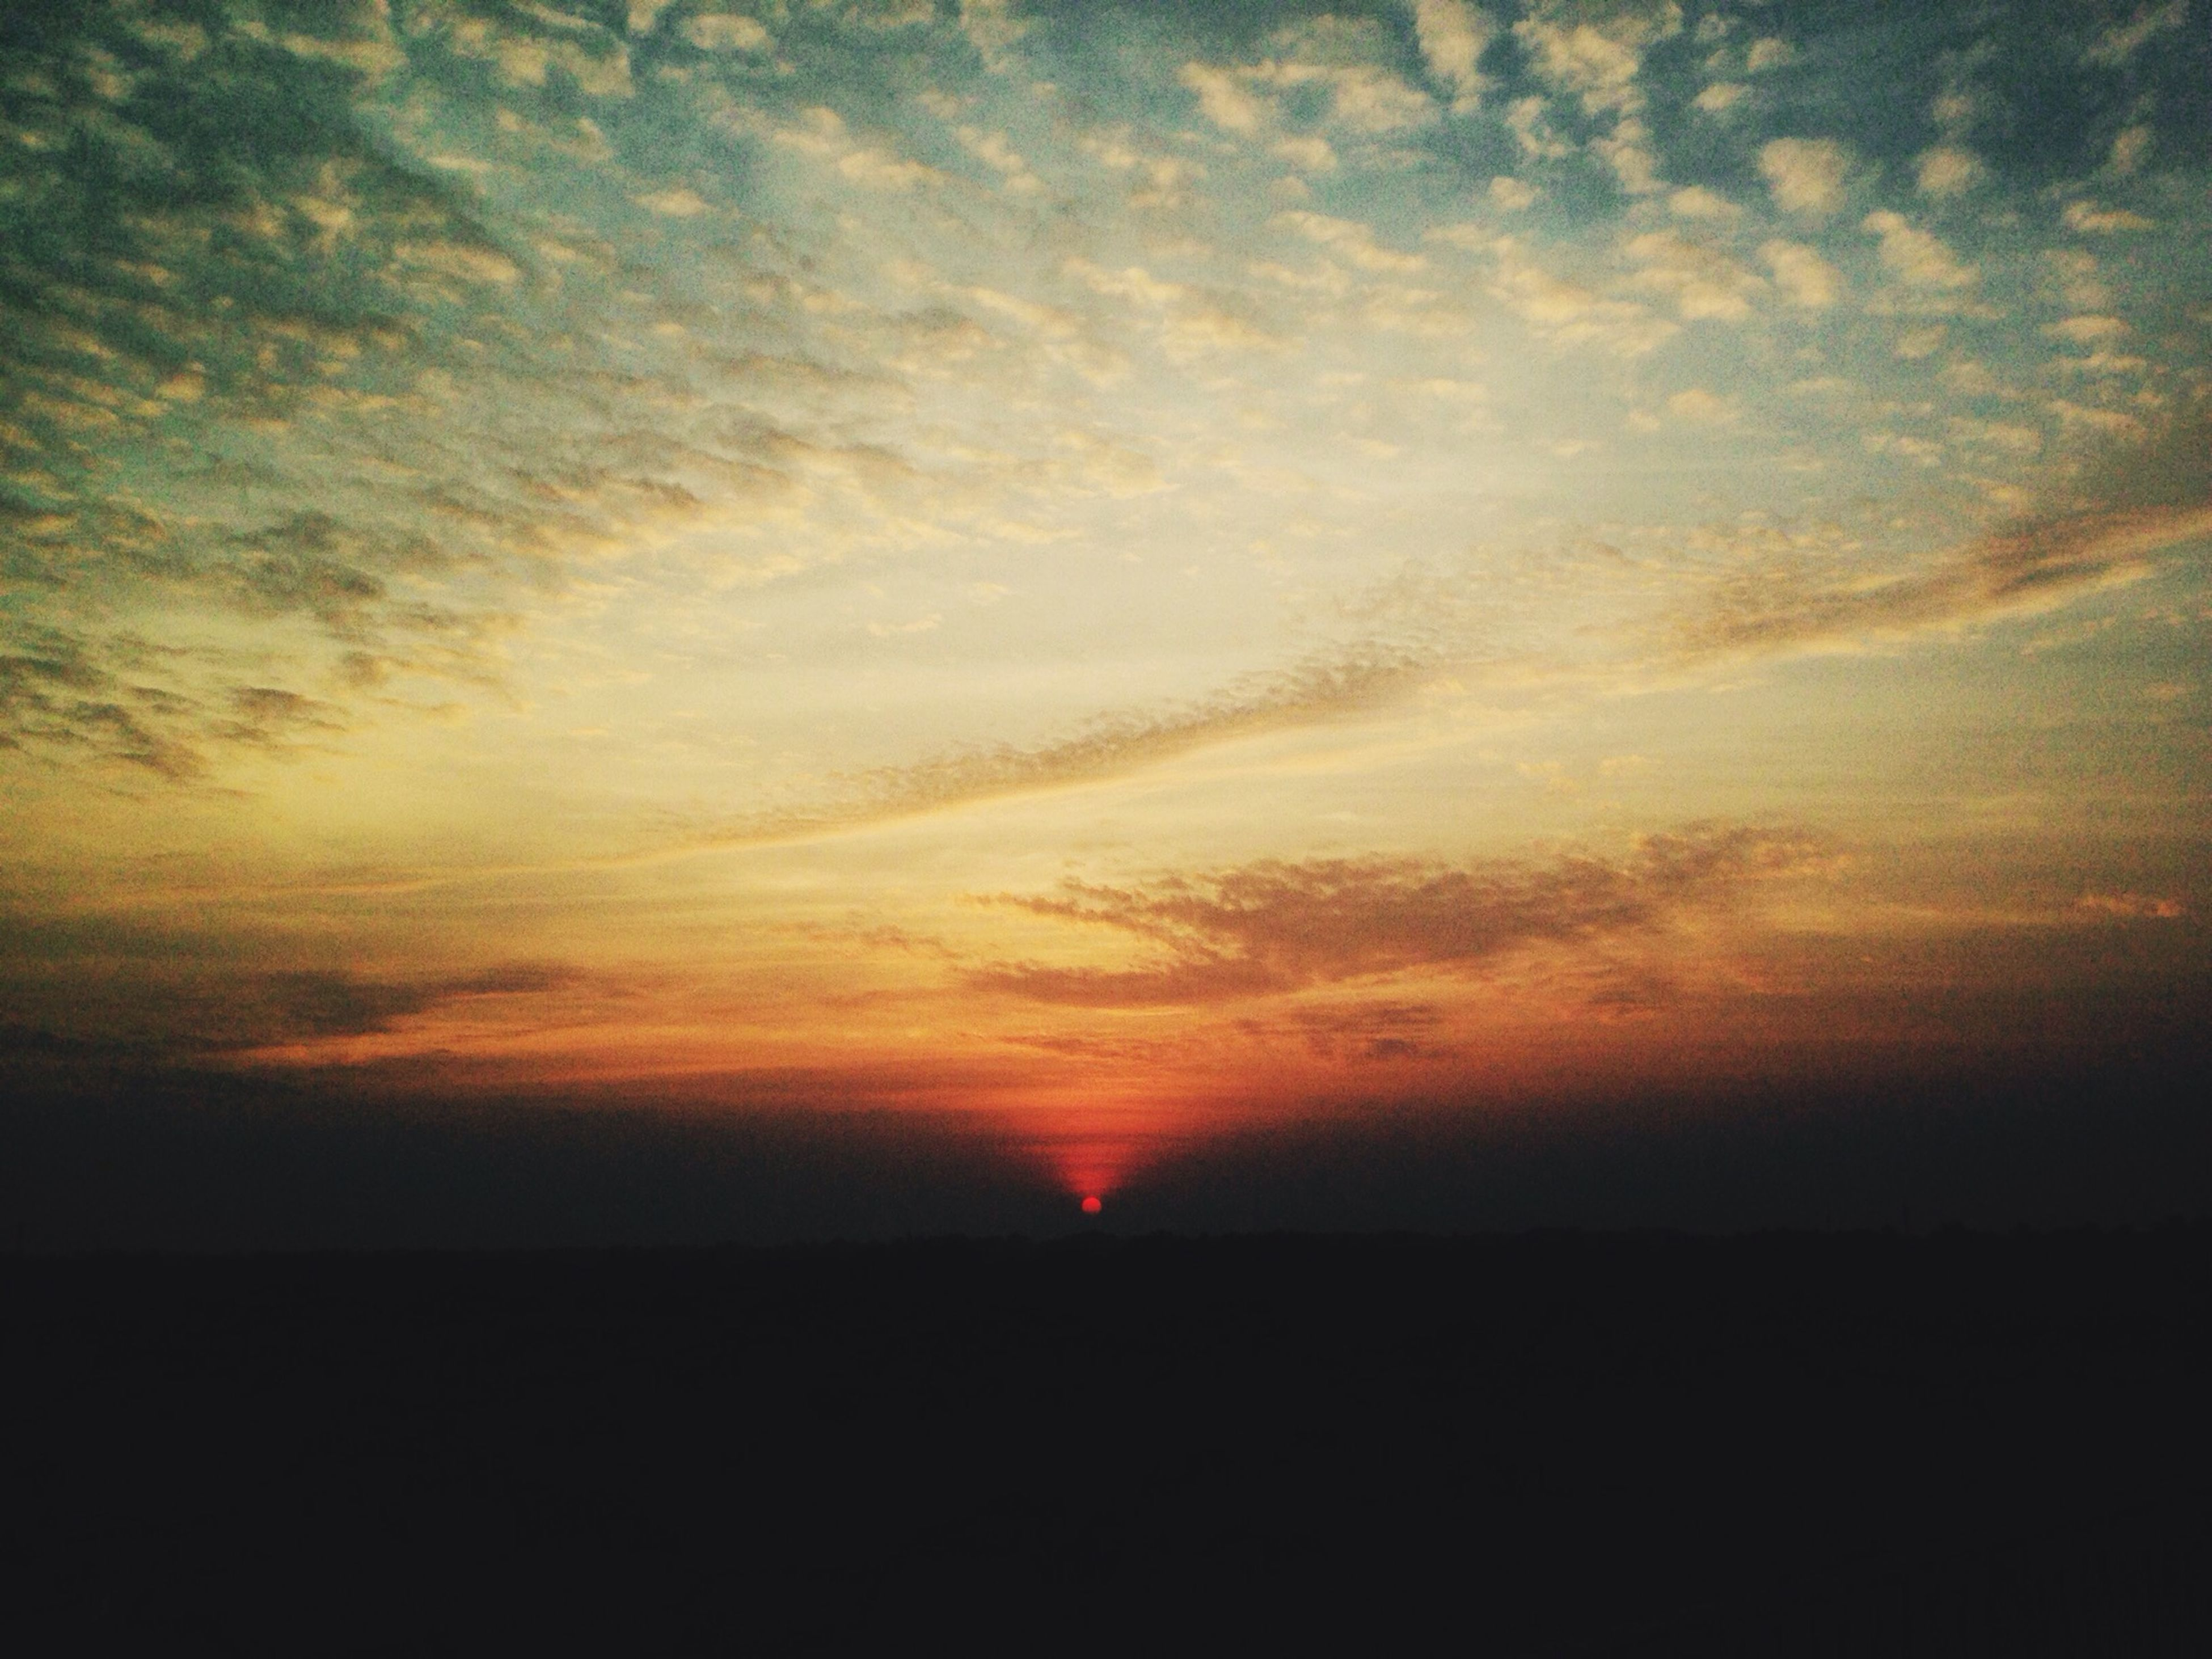 sunset, silhouette, nature, no people, beauty in nature, tranquility, sky, scenics, outdoors